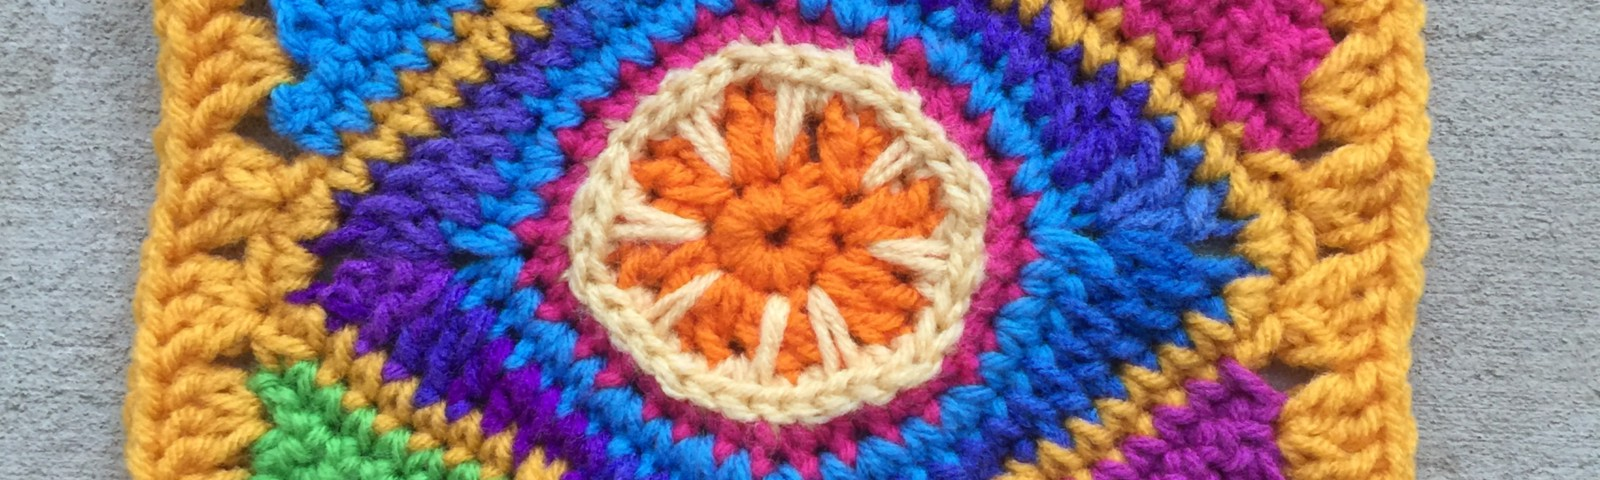 Square C-3, a combination of crochet circles and crochet triangles which form a crochet square